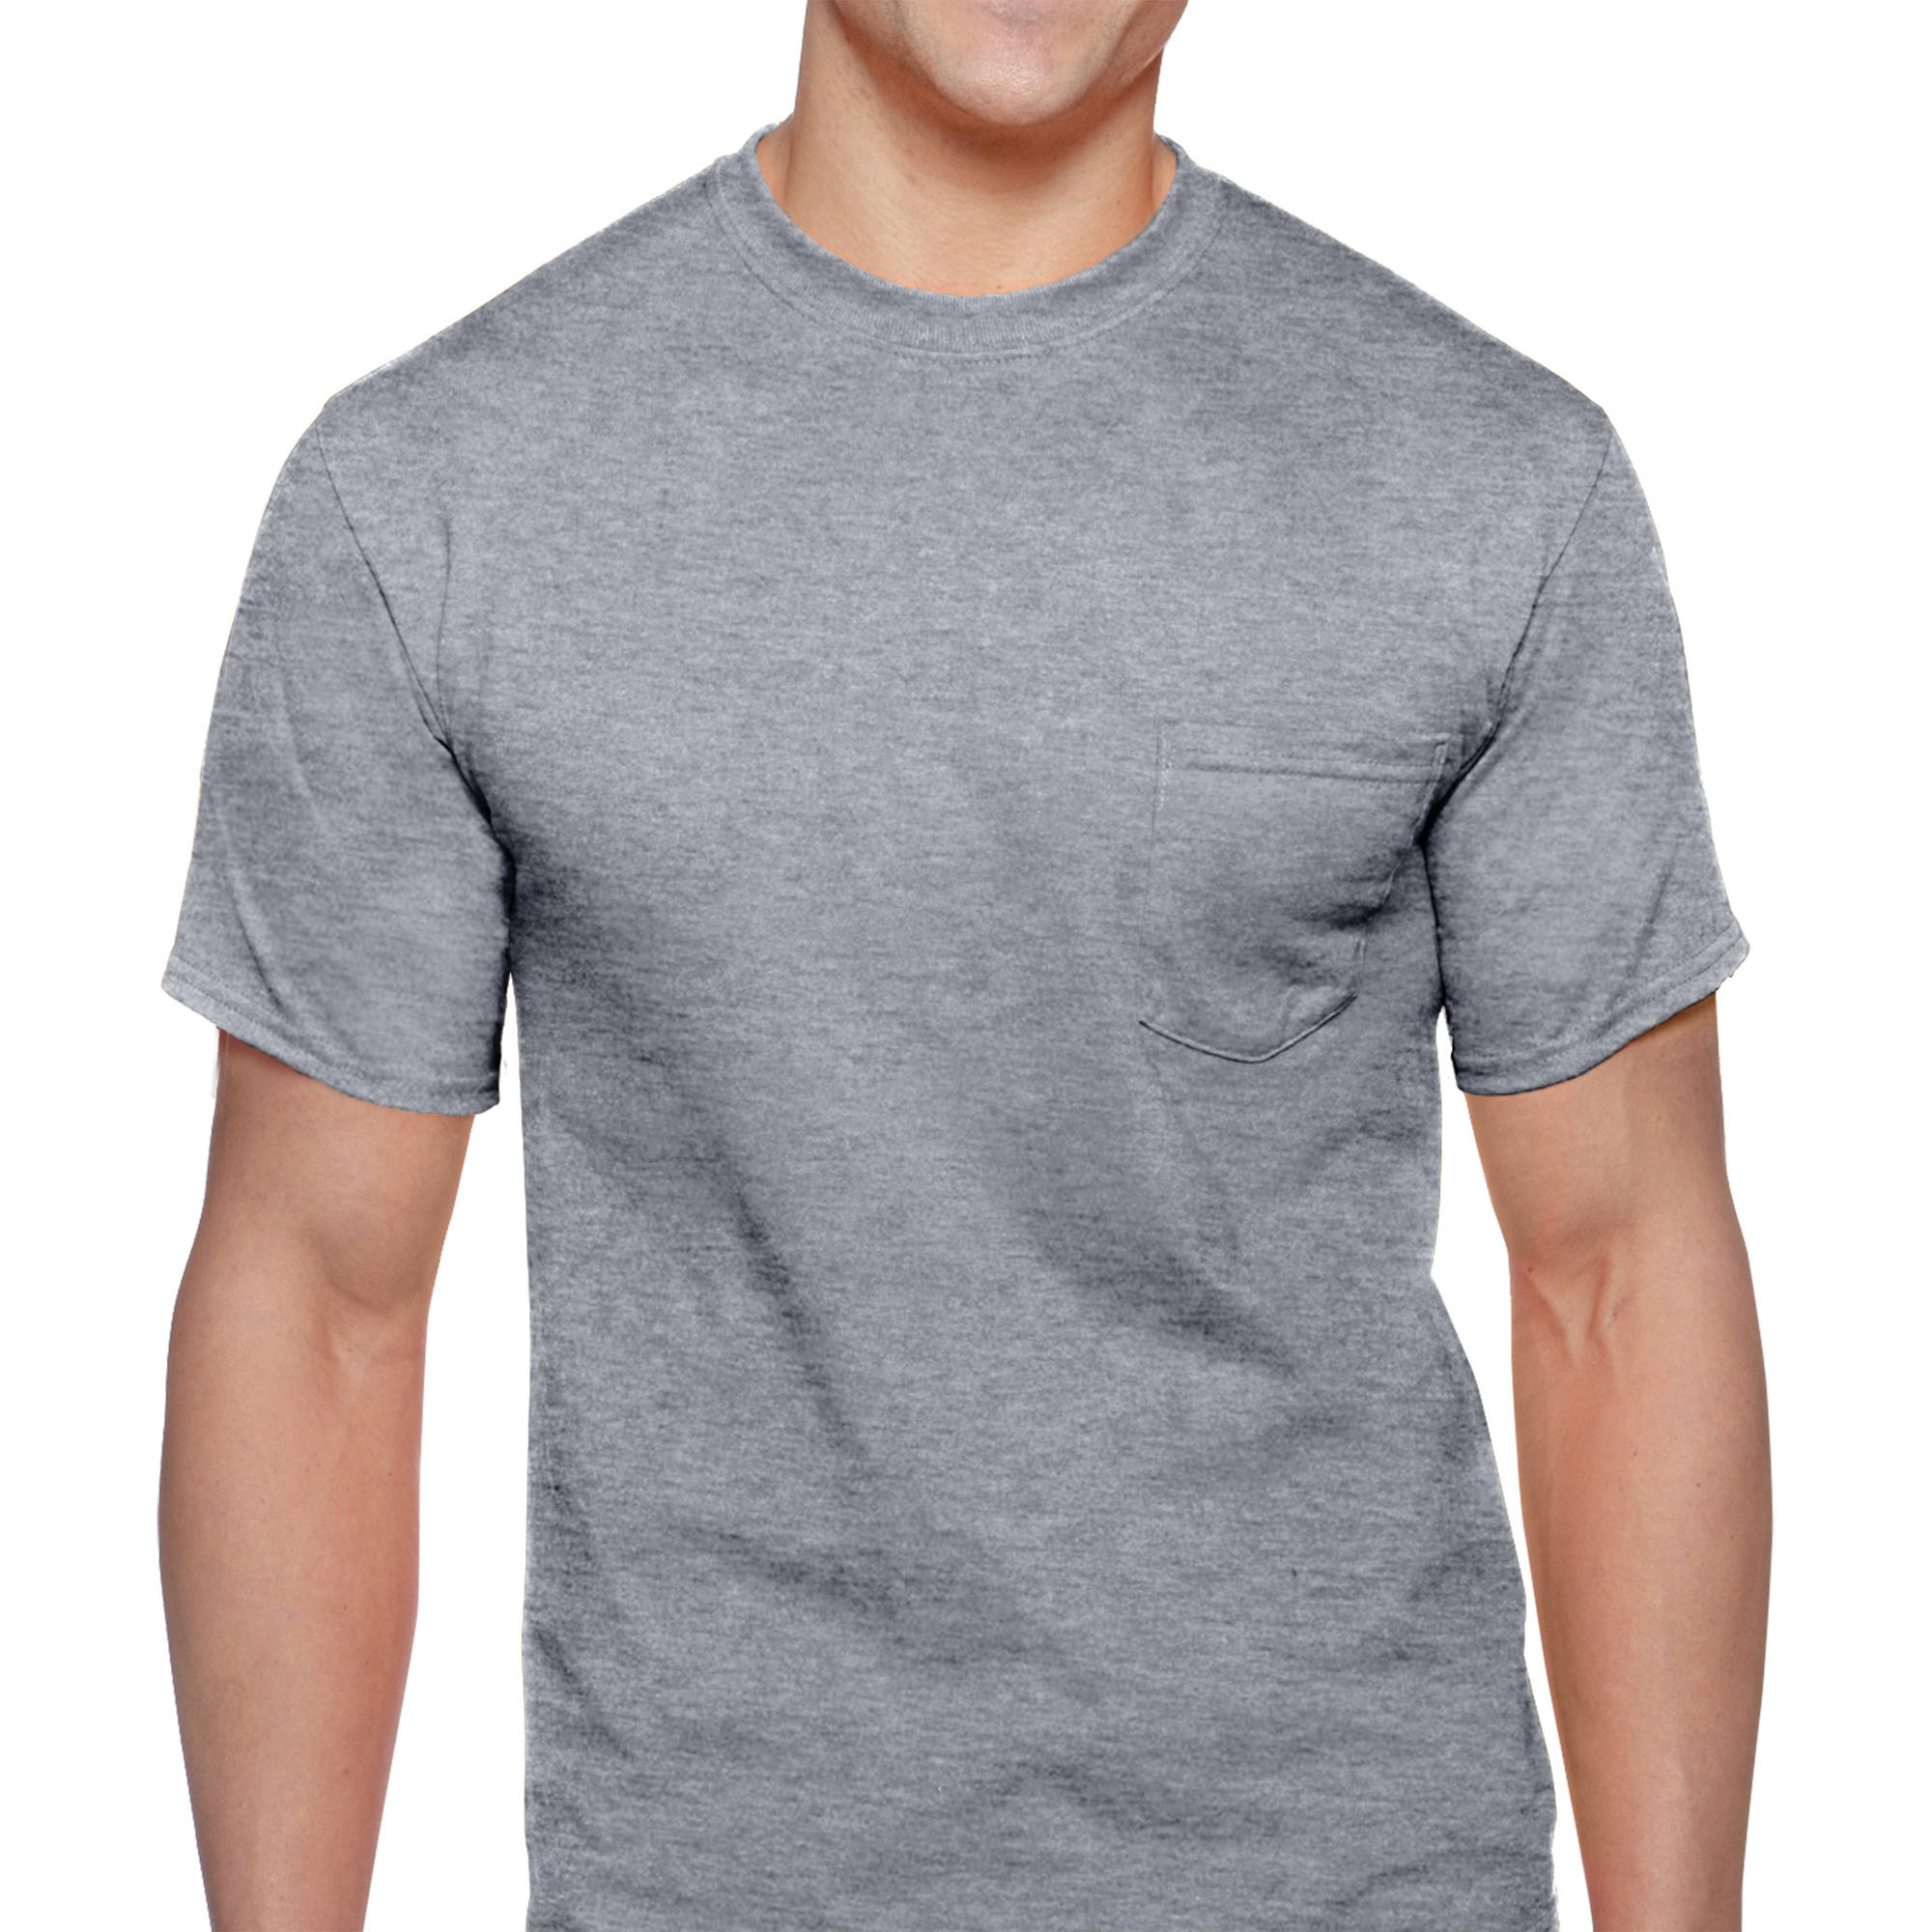 Men's Workwear Short Sleeve Pocket Tee, 2-Pack